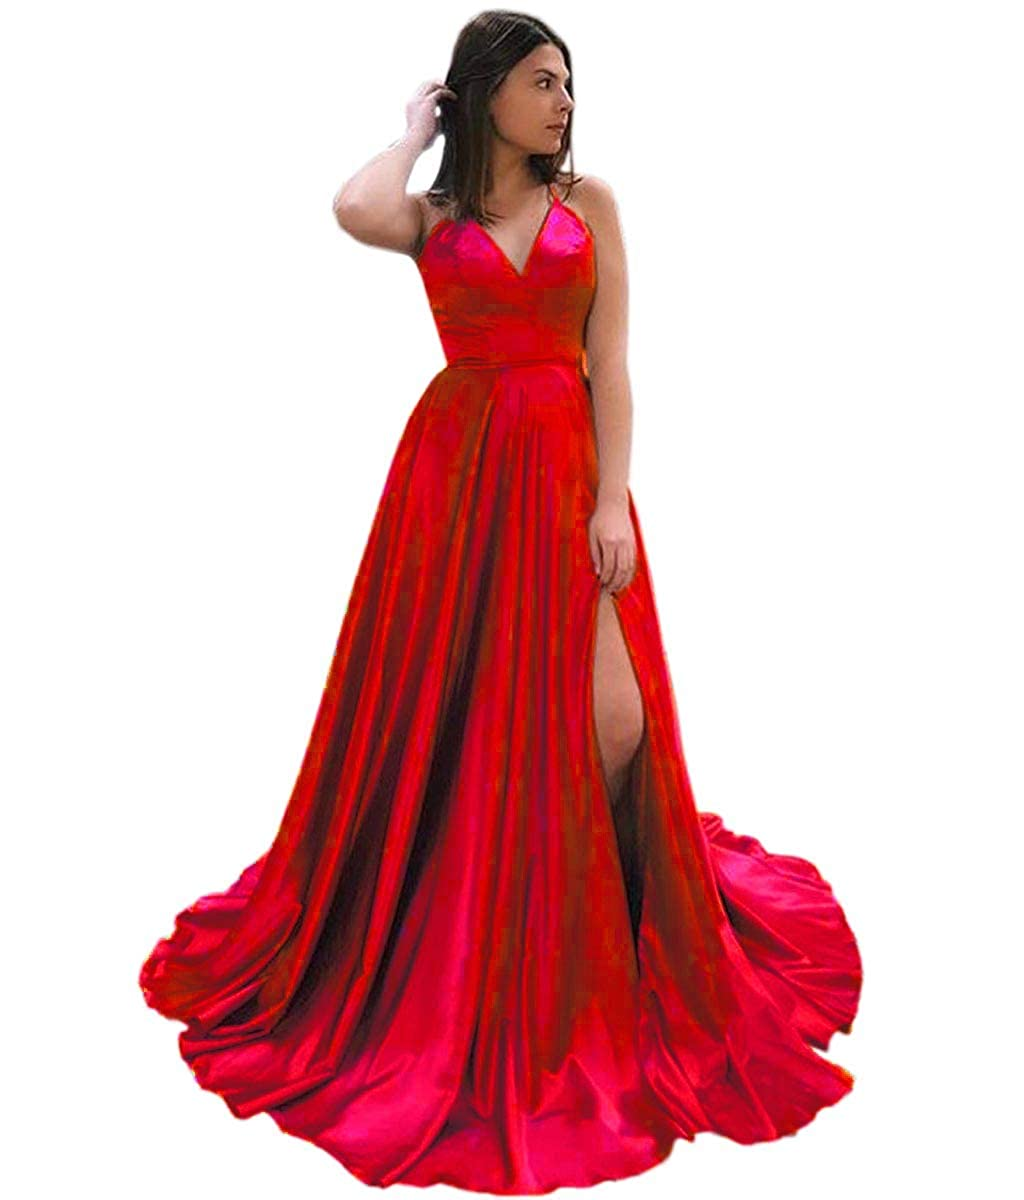 Red Mauwey Halter Neck Satin Prom Dress Split with Pockets Evening Gown Long Maxi for Women Formal